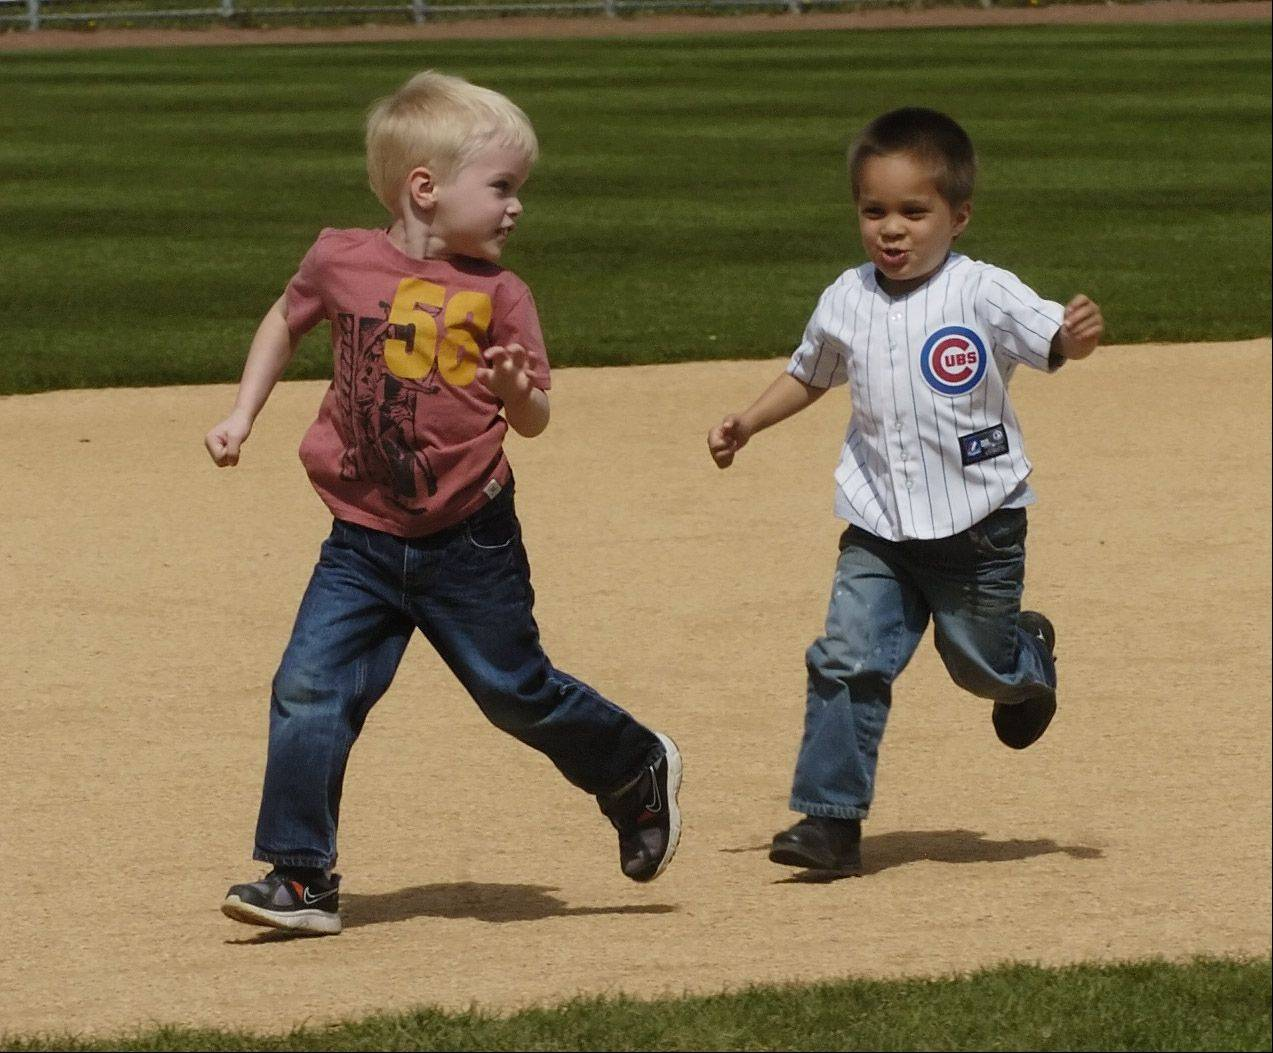 Ben Lukes, 4, of Bloomingdale, left, and his friend Maximilian Alvarado, 4, of Itasca, run the bases during the Schaumburg Boomers baseball team open house Saturday.